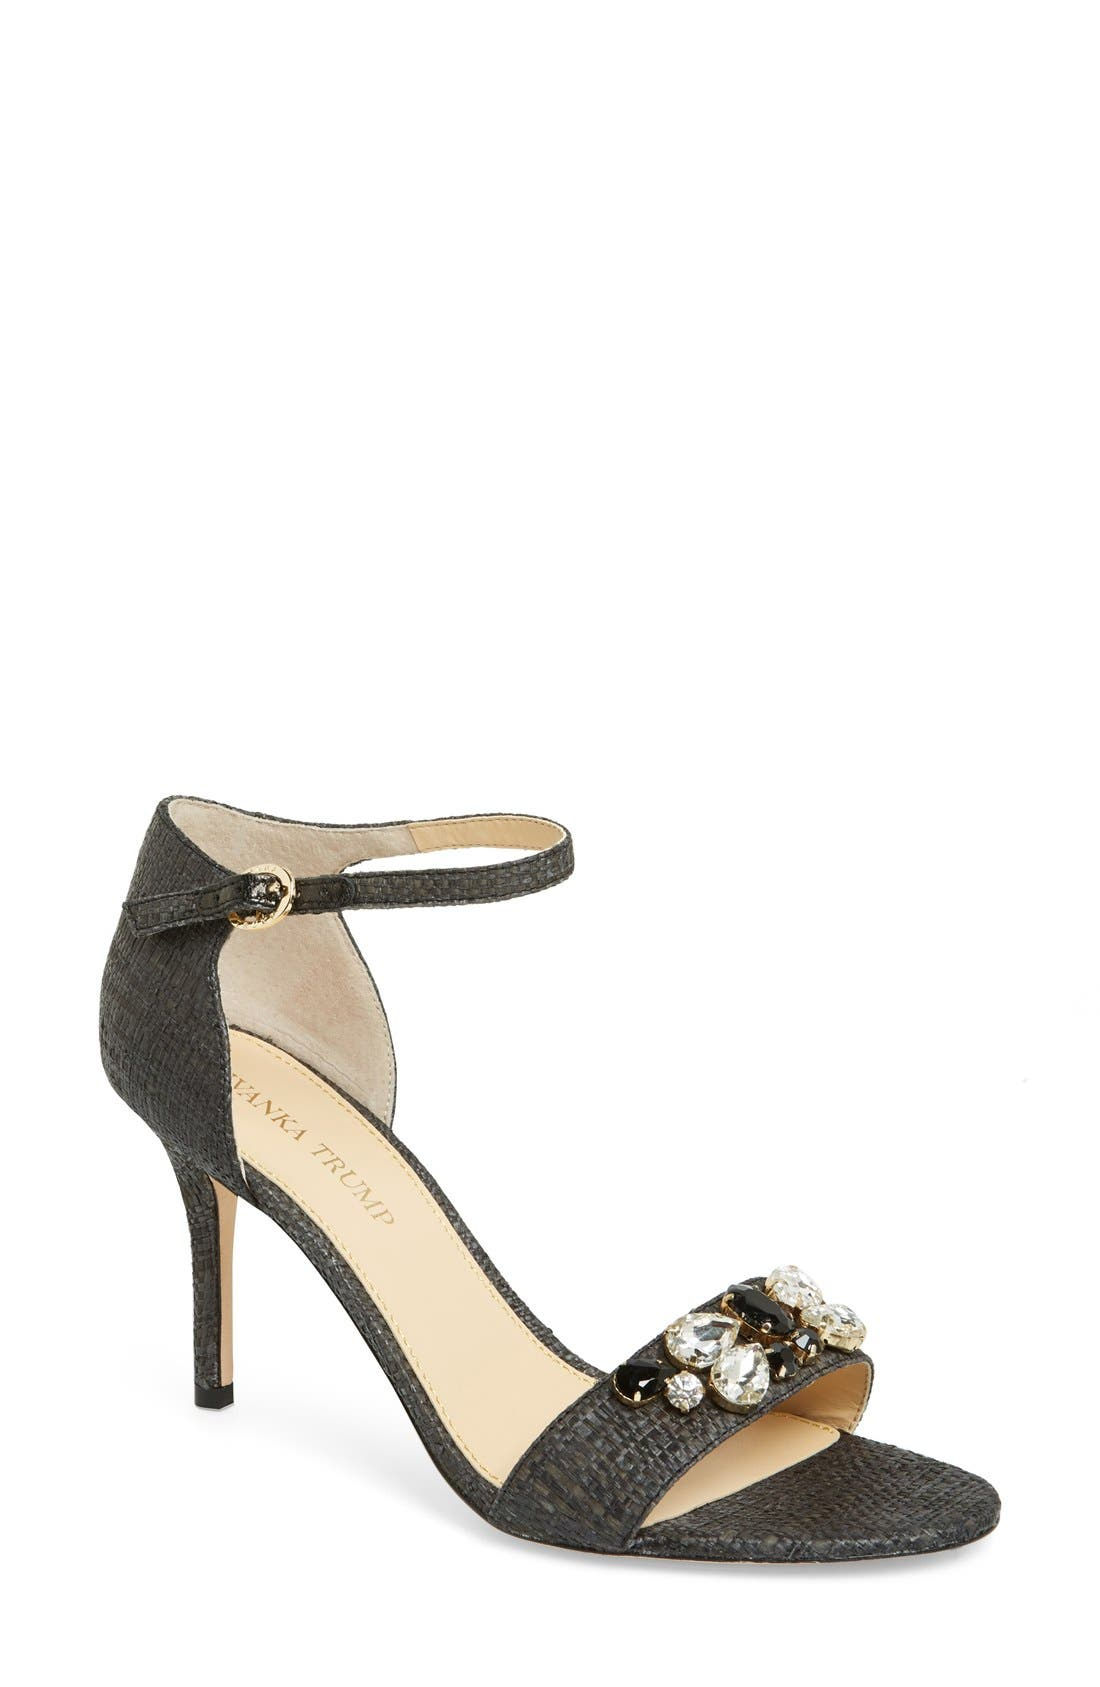 'Gessa' Crystal Embellished Print Sandal,                         Main,                         color, 001